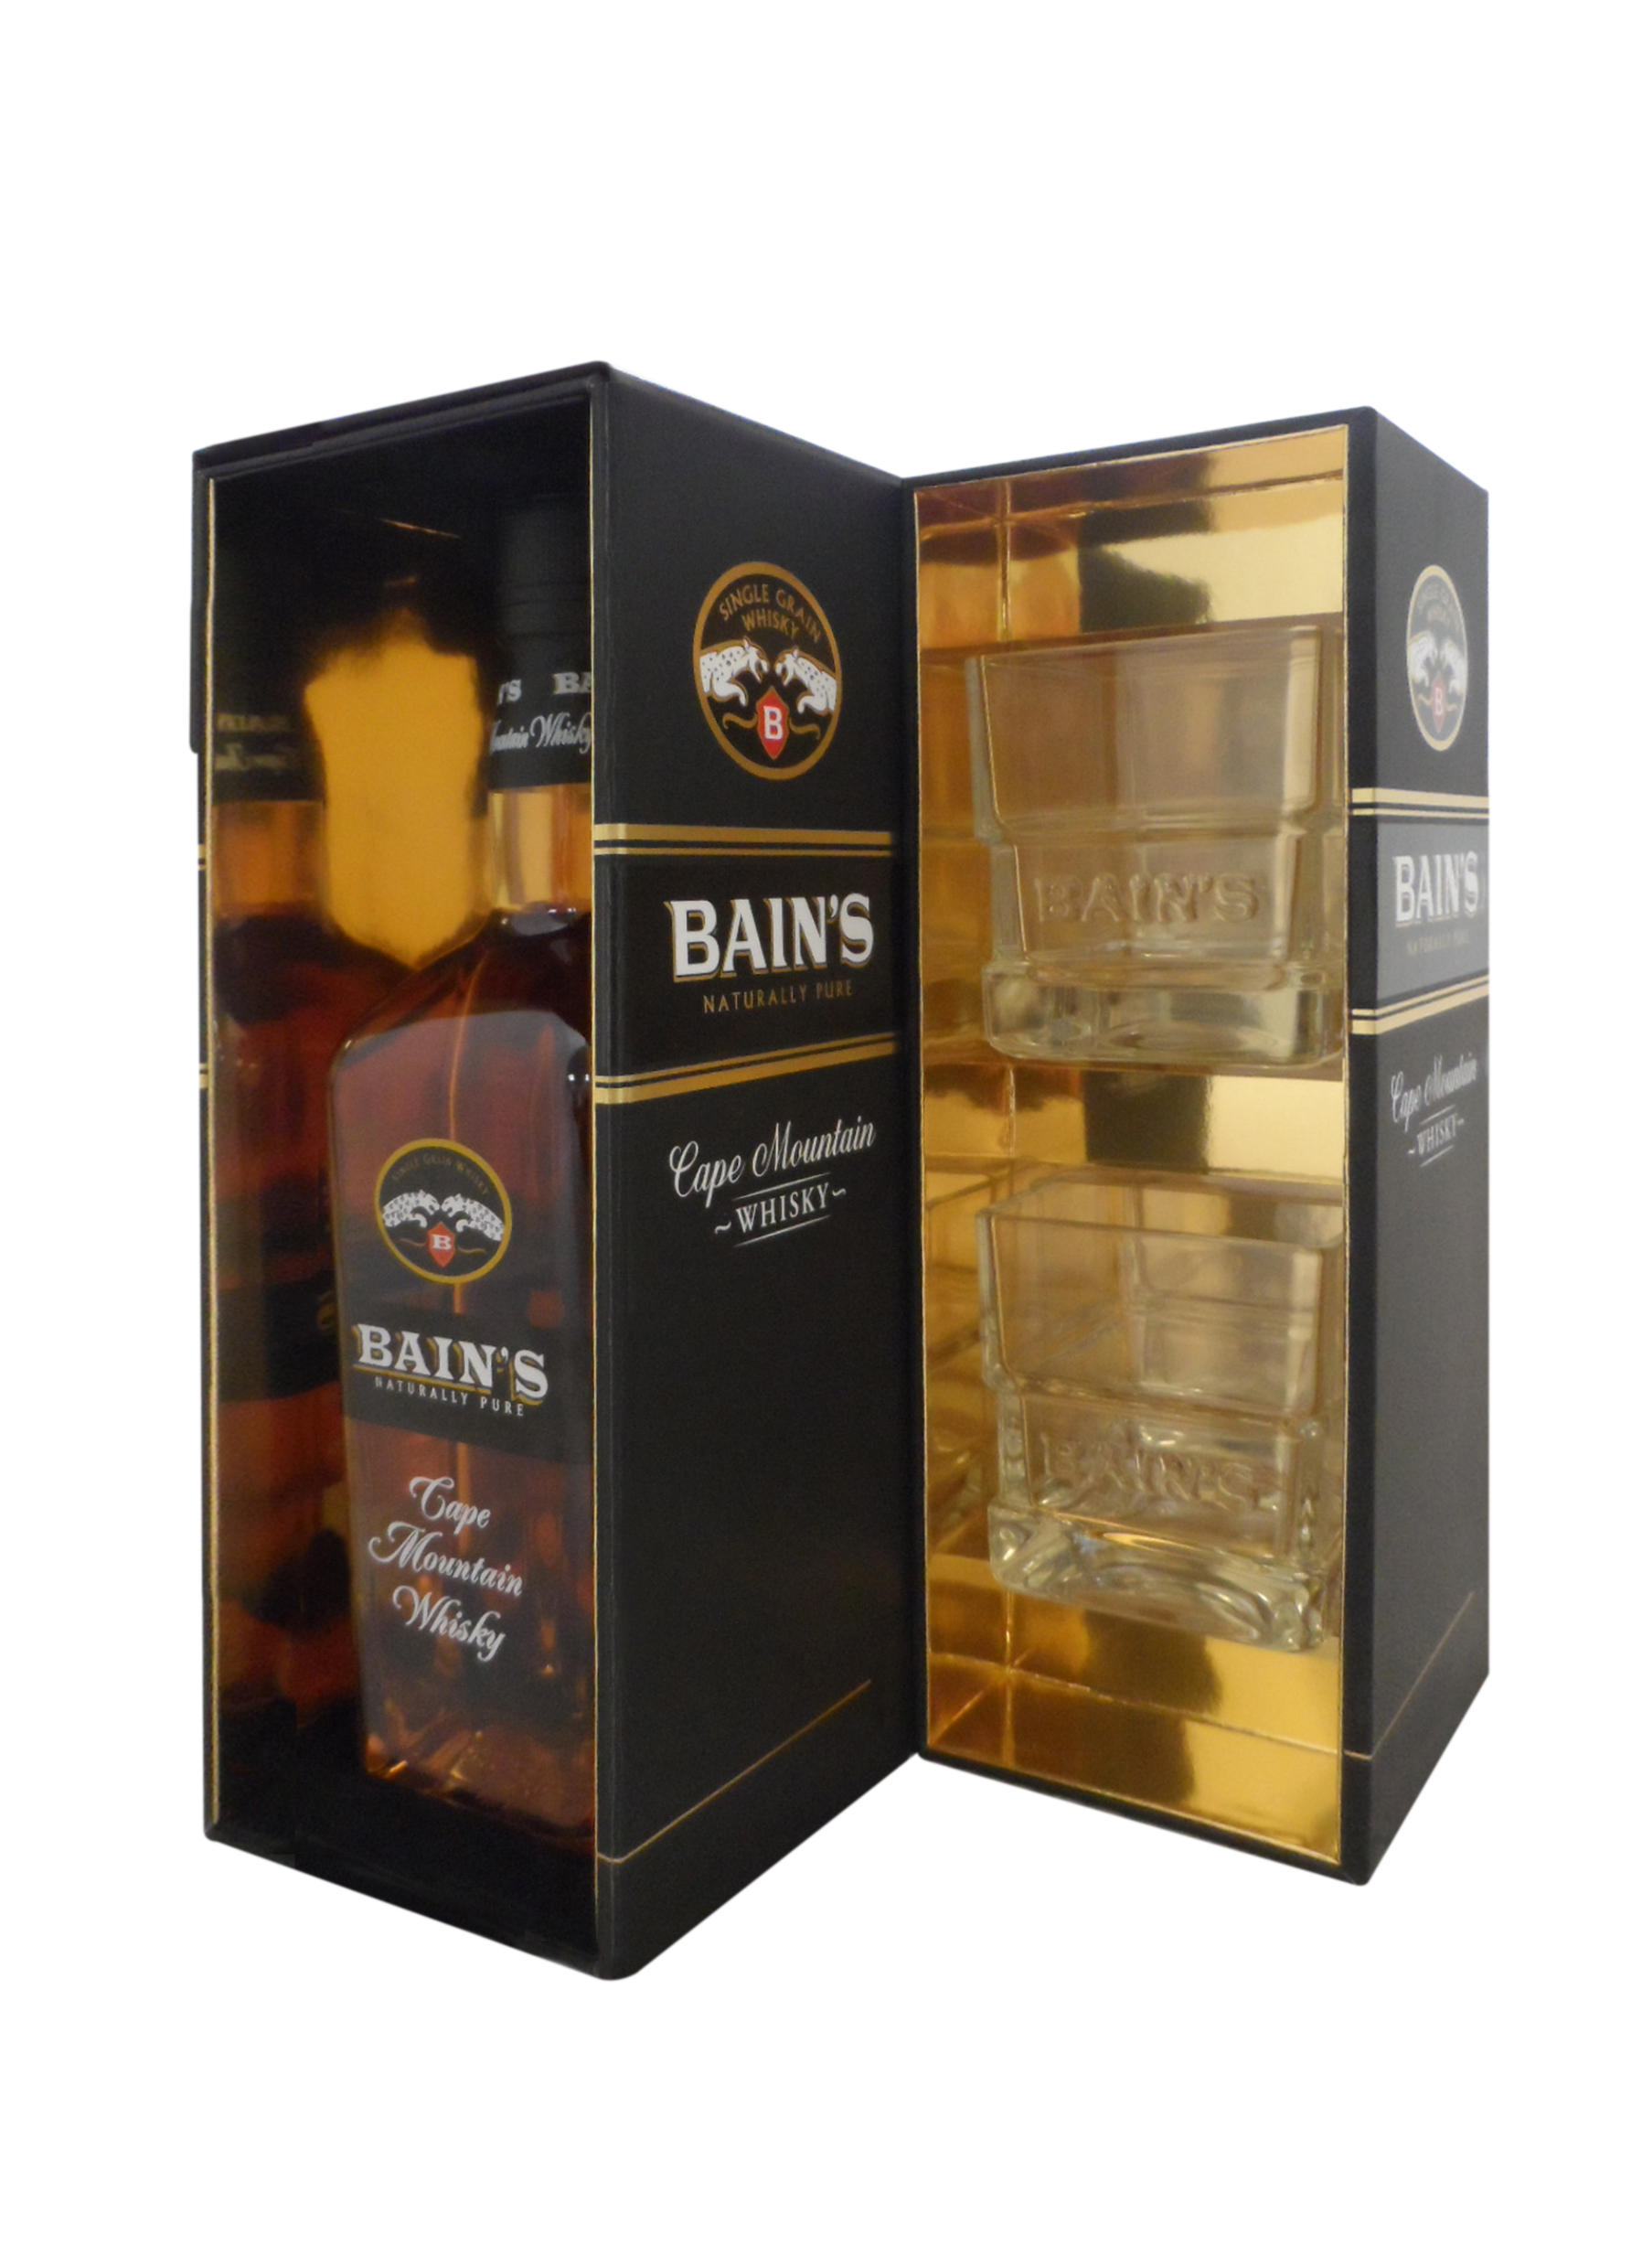 Pps packs are a hit in south africa packaging scotland for Bain s cape mountain whisky